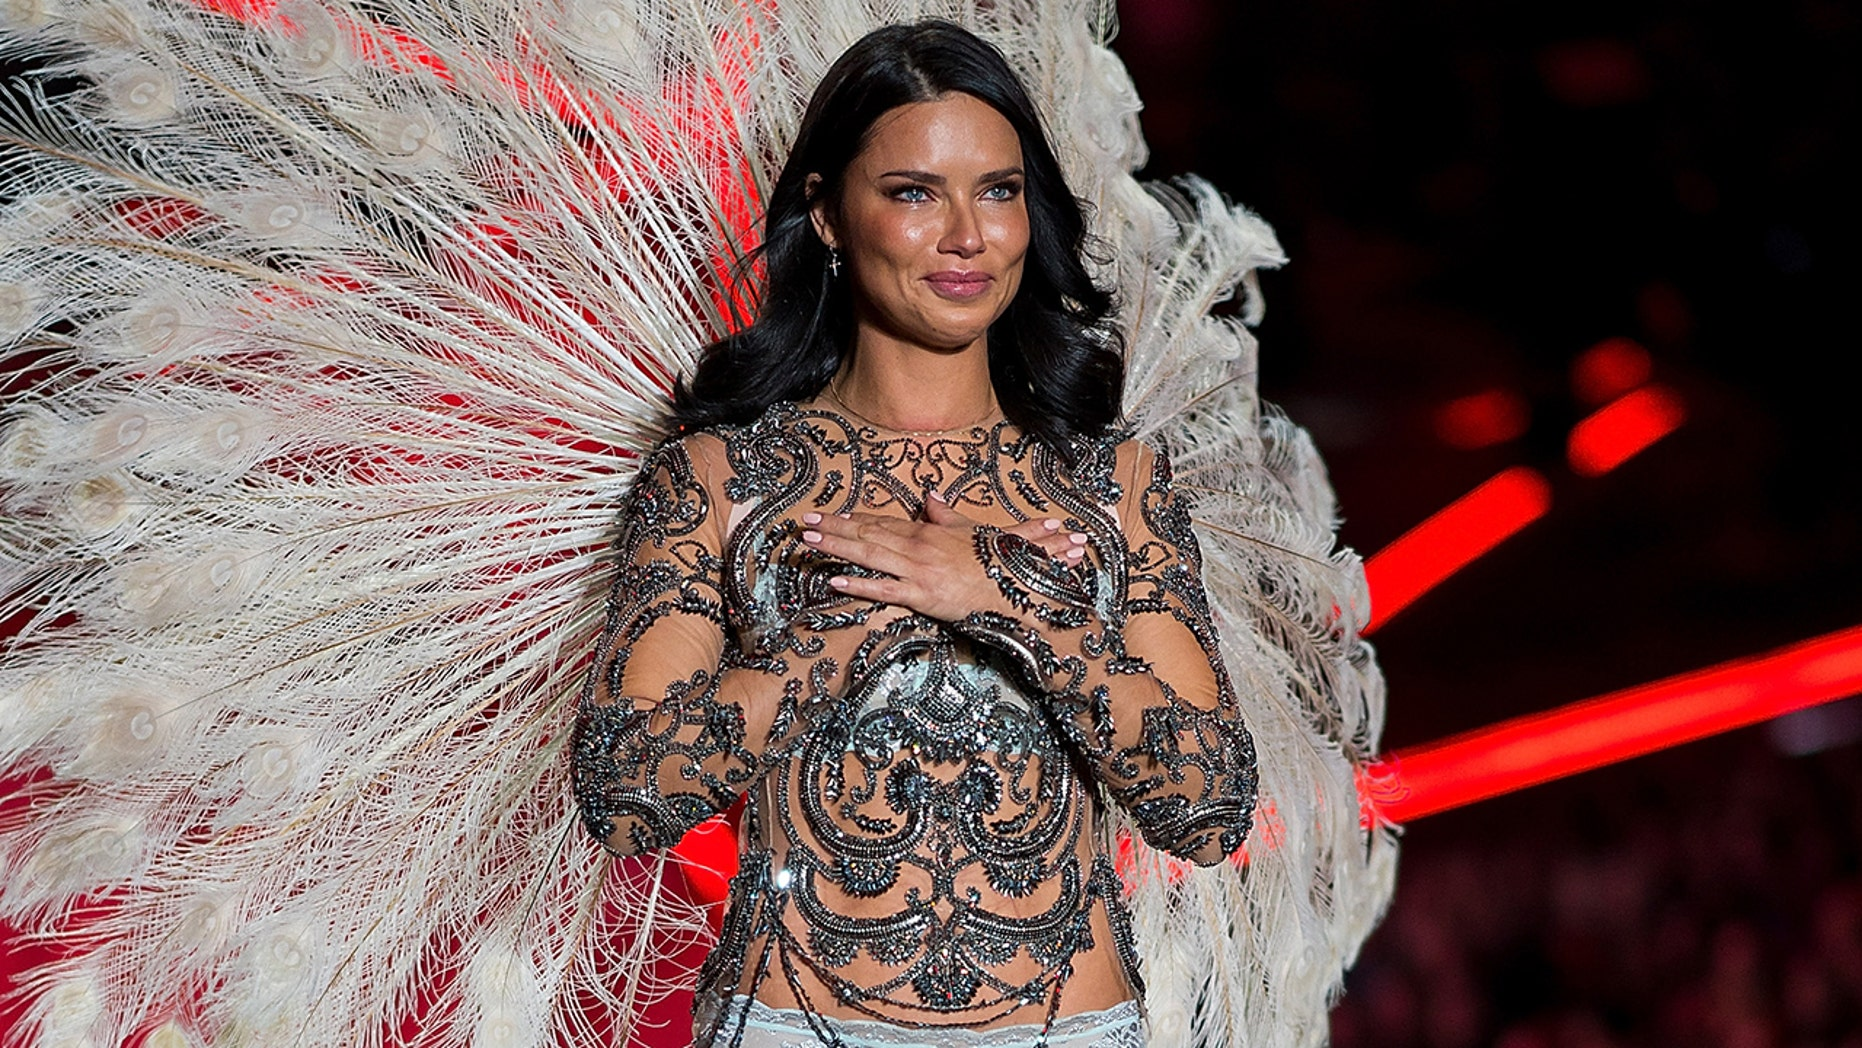 Adriana Lima walks the runway during the 2018 Victoria's Secret Fashion Show at Pier 94 on November 8, 2018 in New York City.